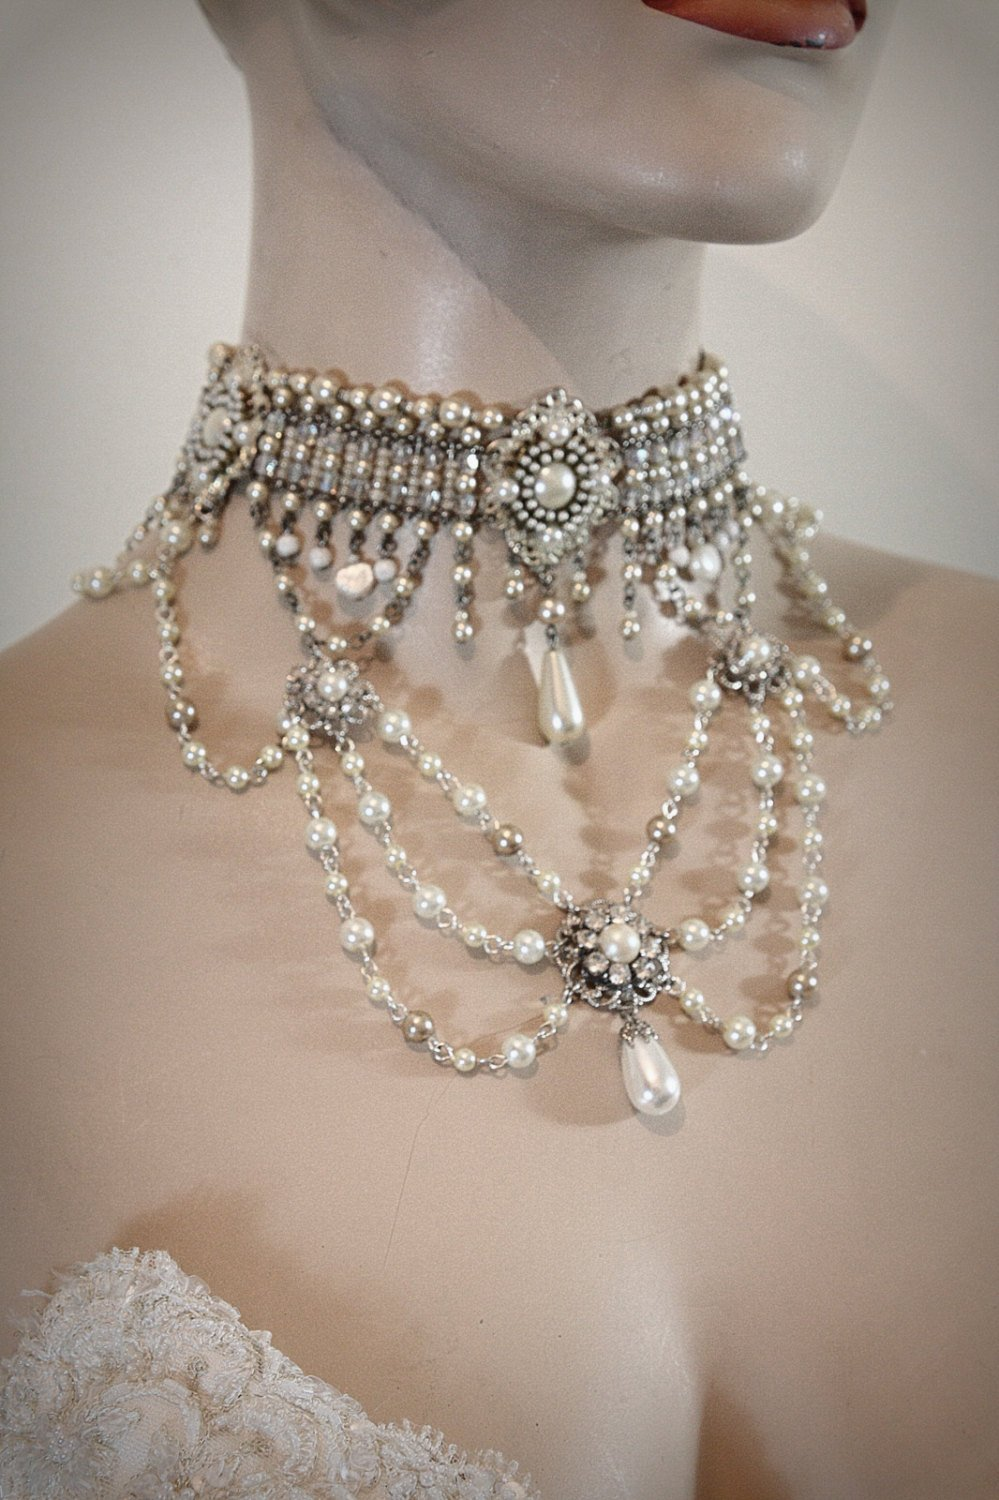 Silver Choker Pearls with Rhinestones Necklace Choker Pearl and Rhinestone Choker Pearl Choker Pearls Silver Necklace Vintage Necklace